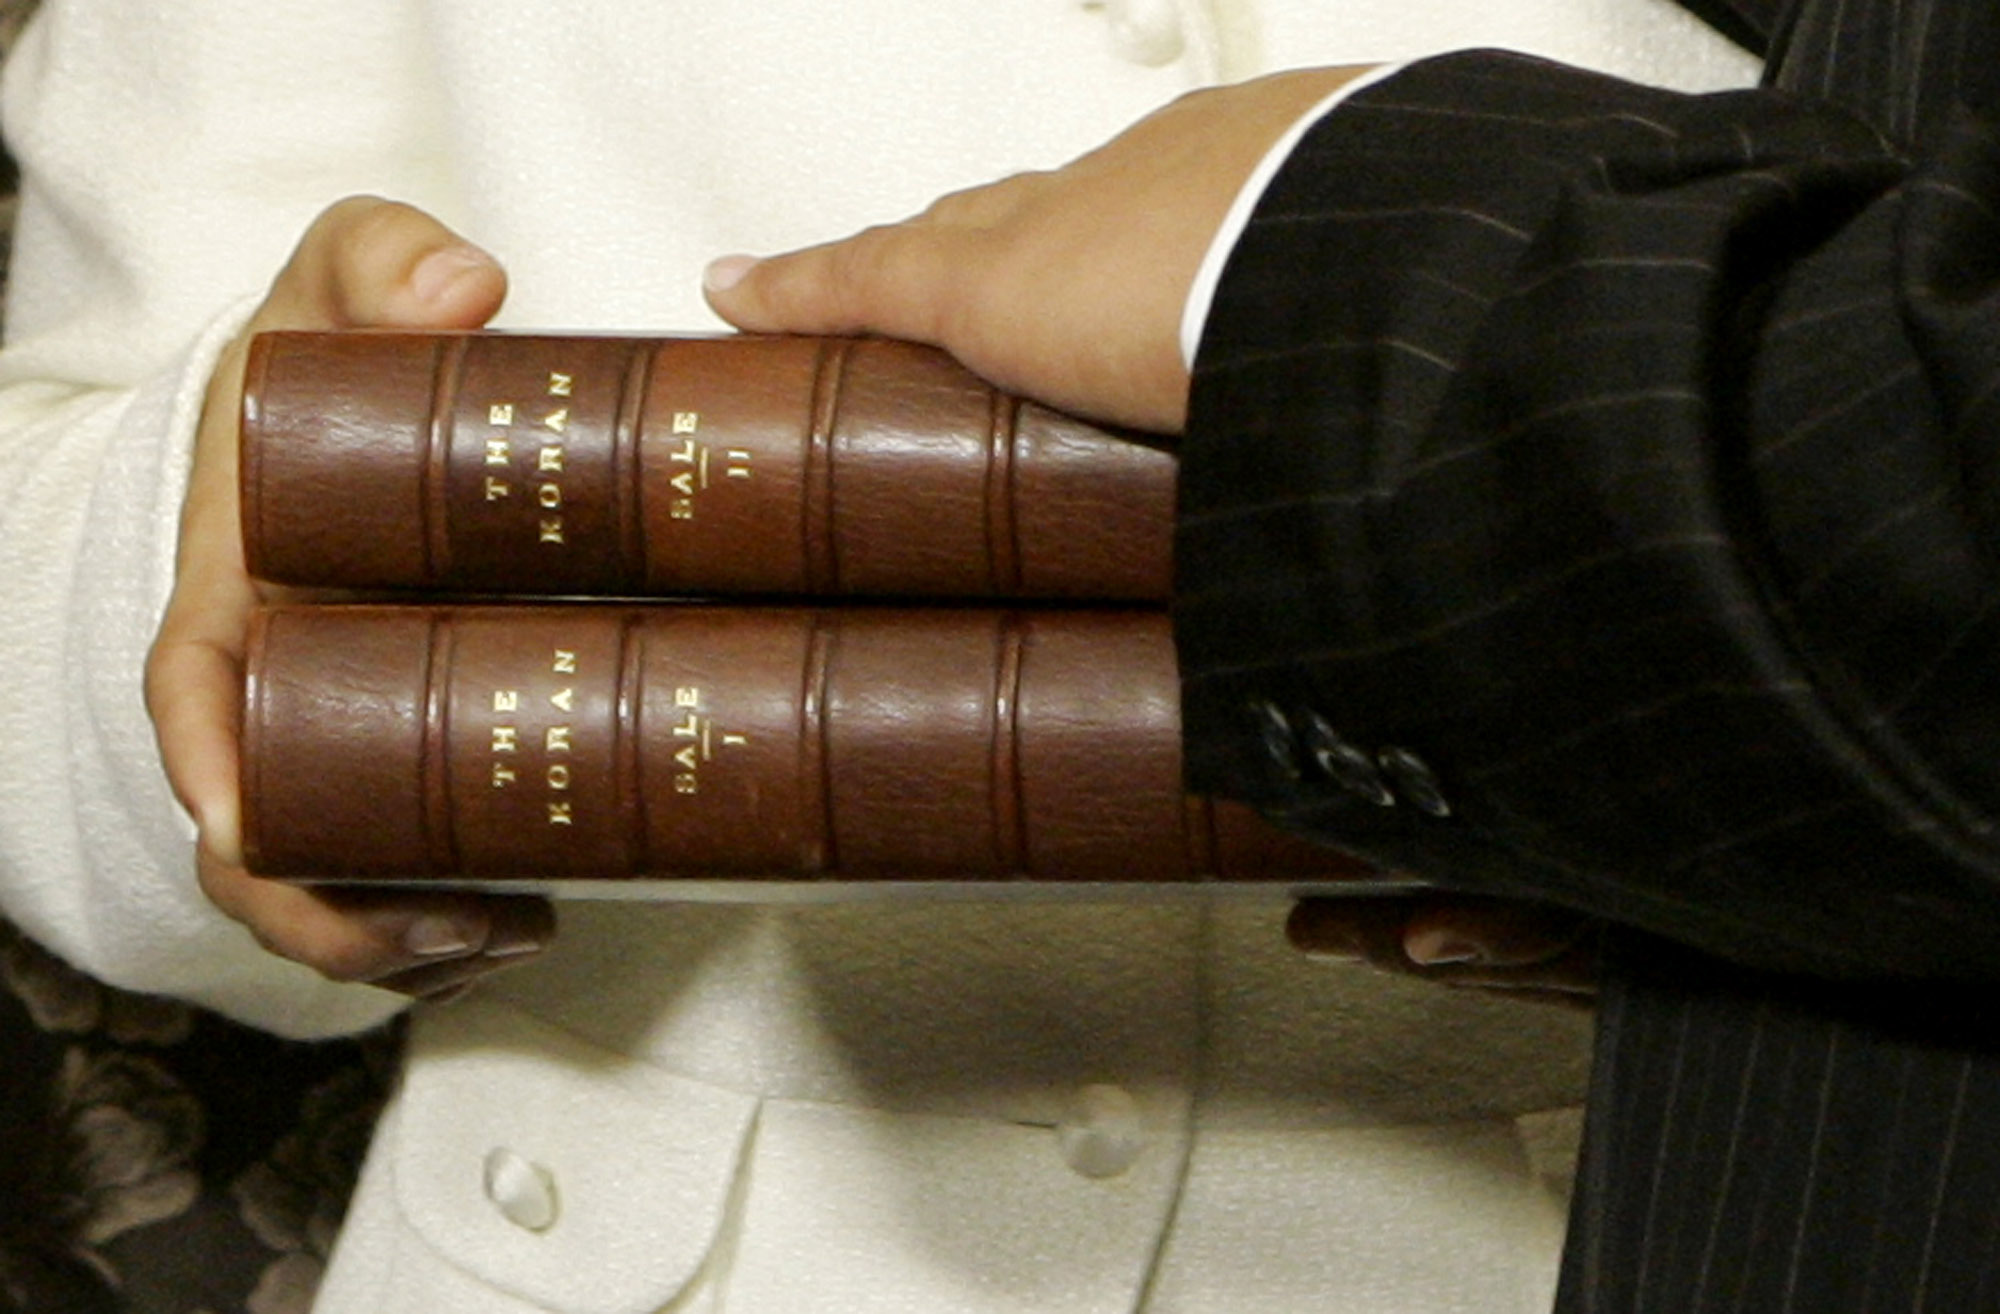 The two volume Koran once owned by Thomas Jefferson that will be used in the swearing in ceremony of incoming Congress woman Rashida Tlaib seen here in the ceremony of Rep. Keith Ellison D-Minn. the first Muslim elected to Congress during his swearing